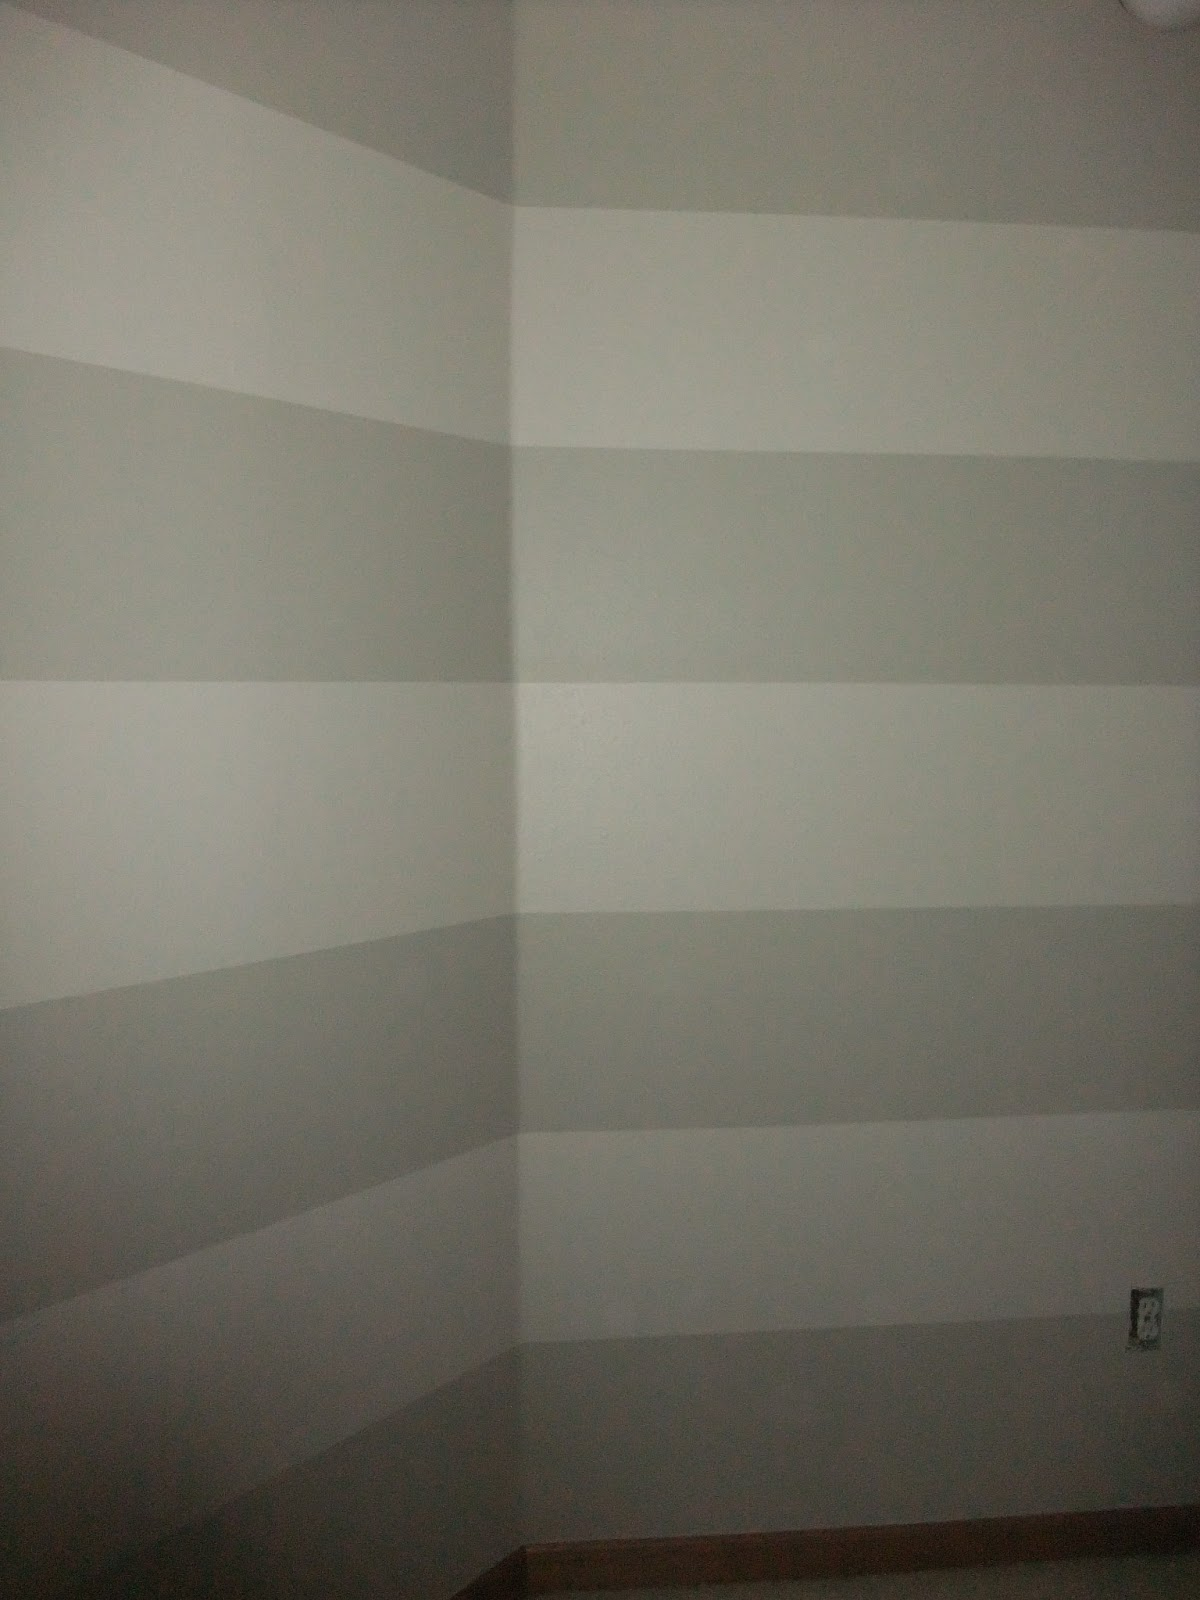 Just Another Hang Up: Painting Stripes on Textured Walls